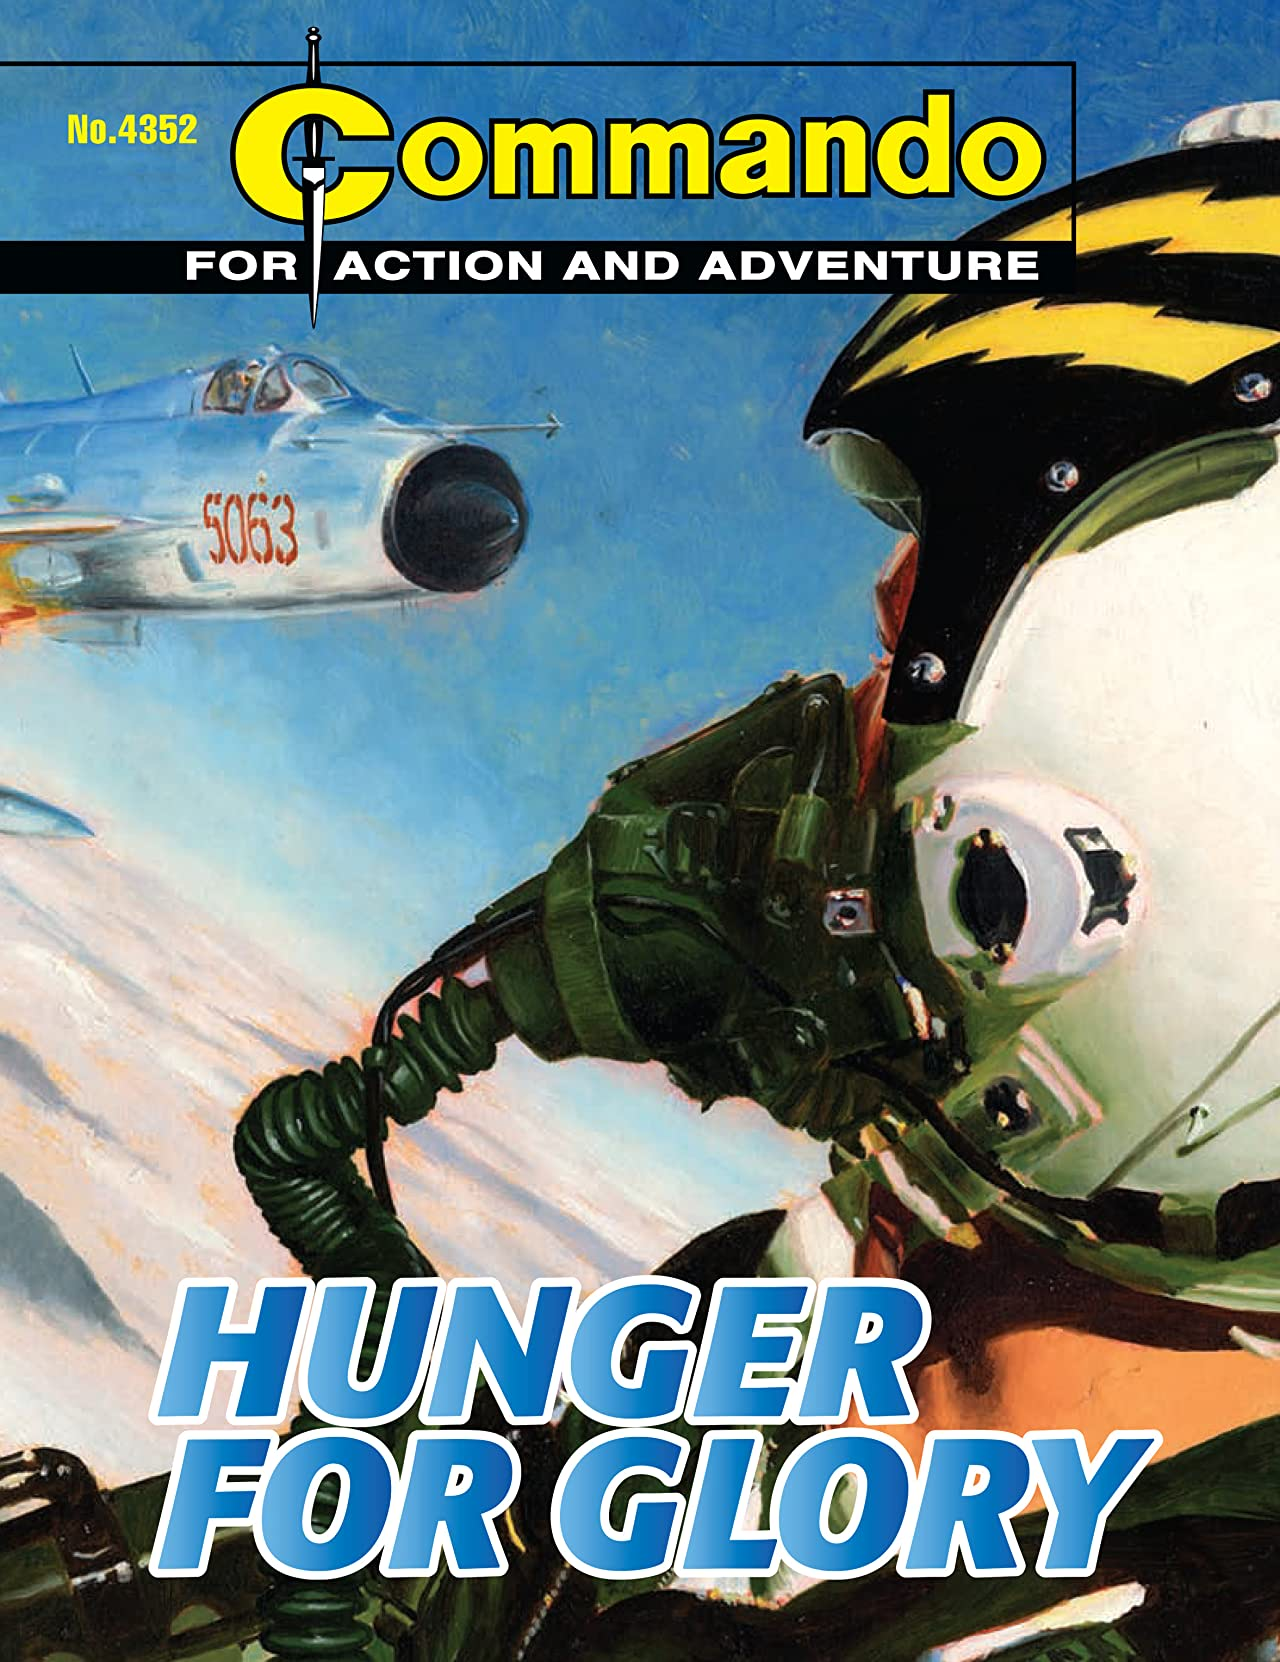 Commando #4352: Hunger For Glory